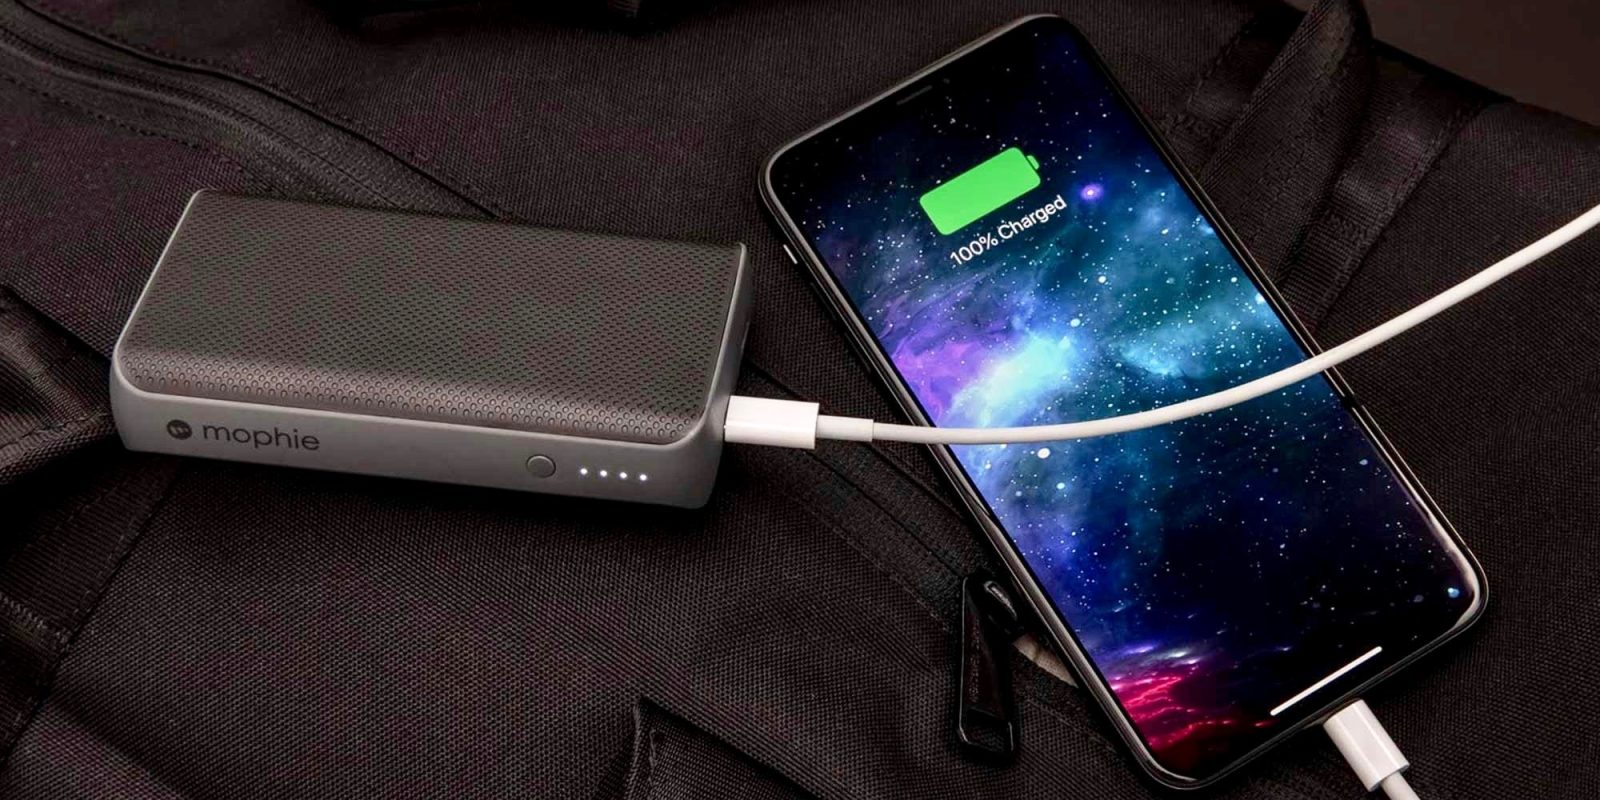 Mophie PD charger